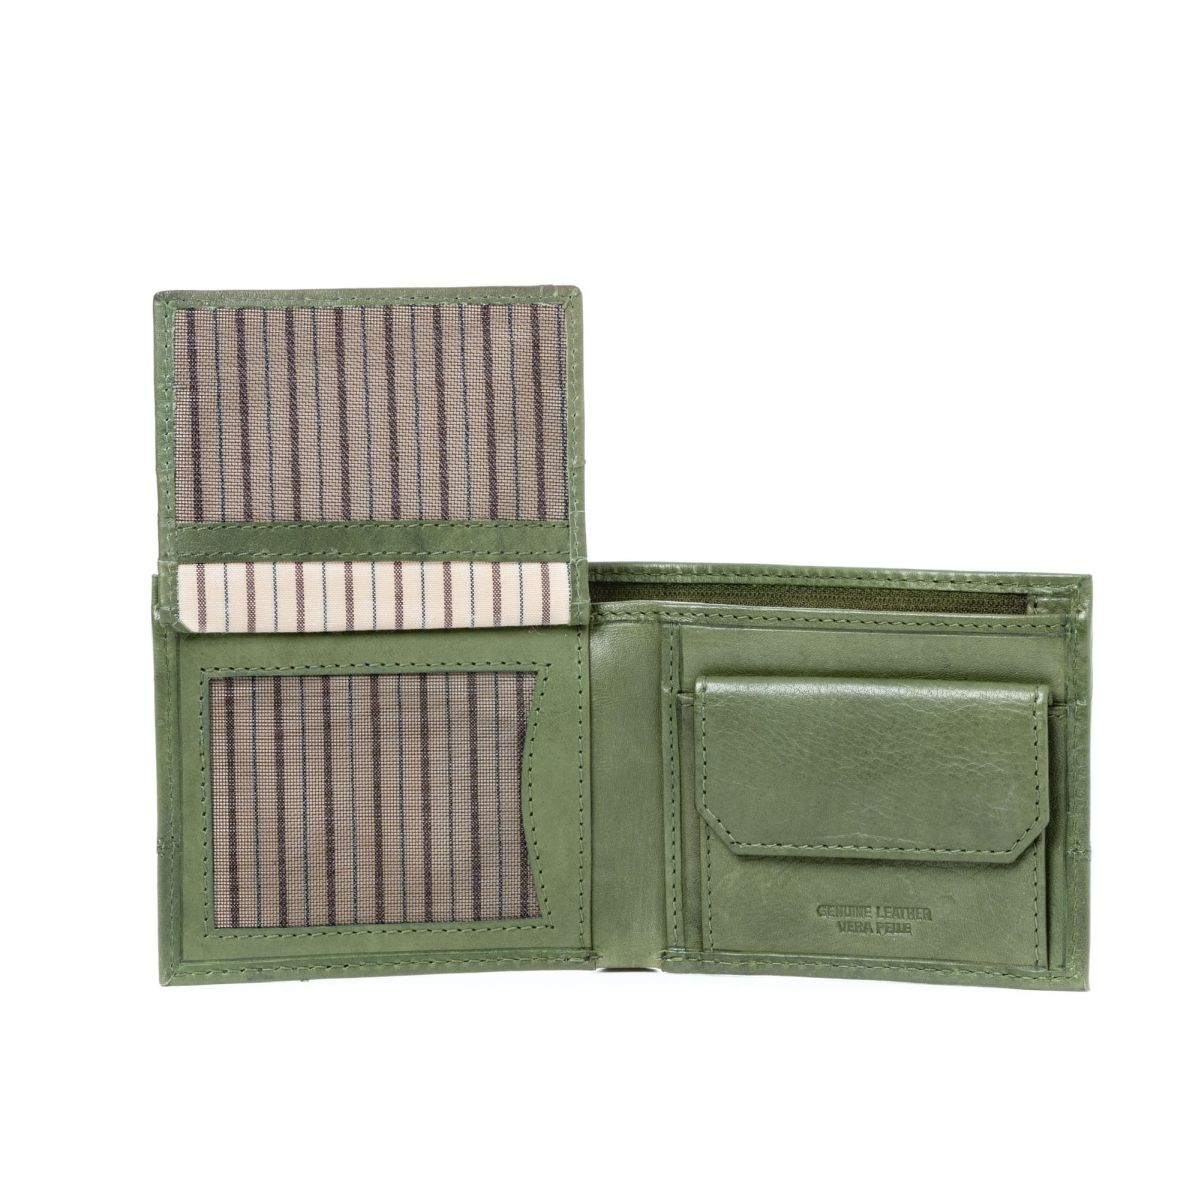 DuDu Unique Leather Wallet With Coin Purse - Green